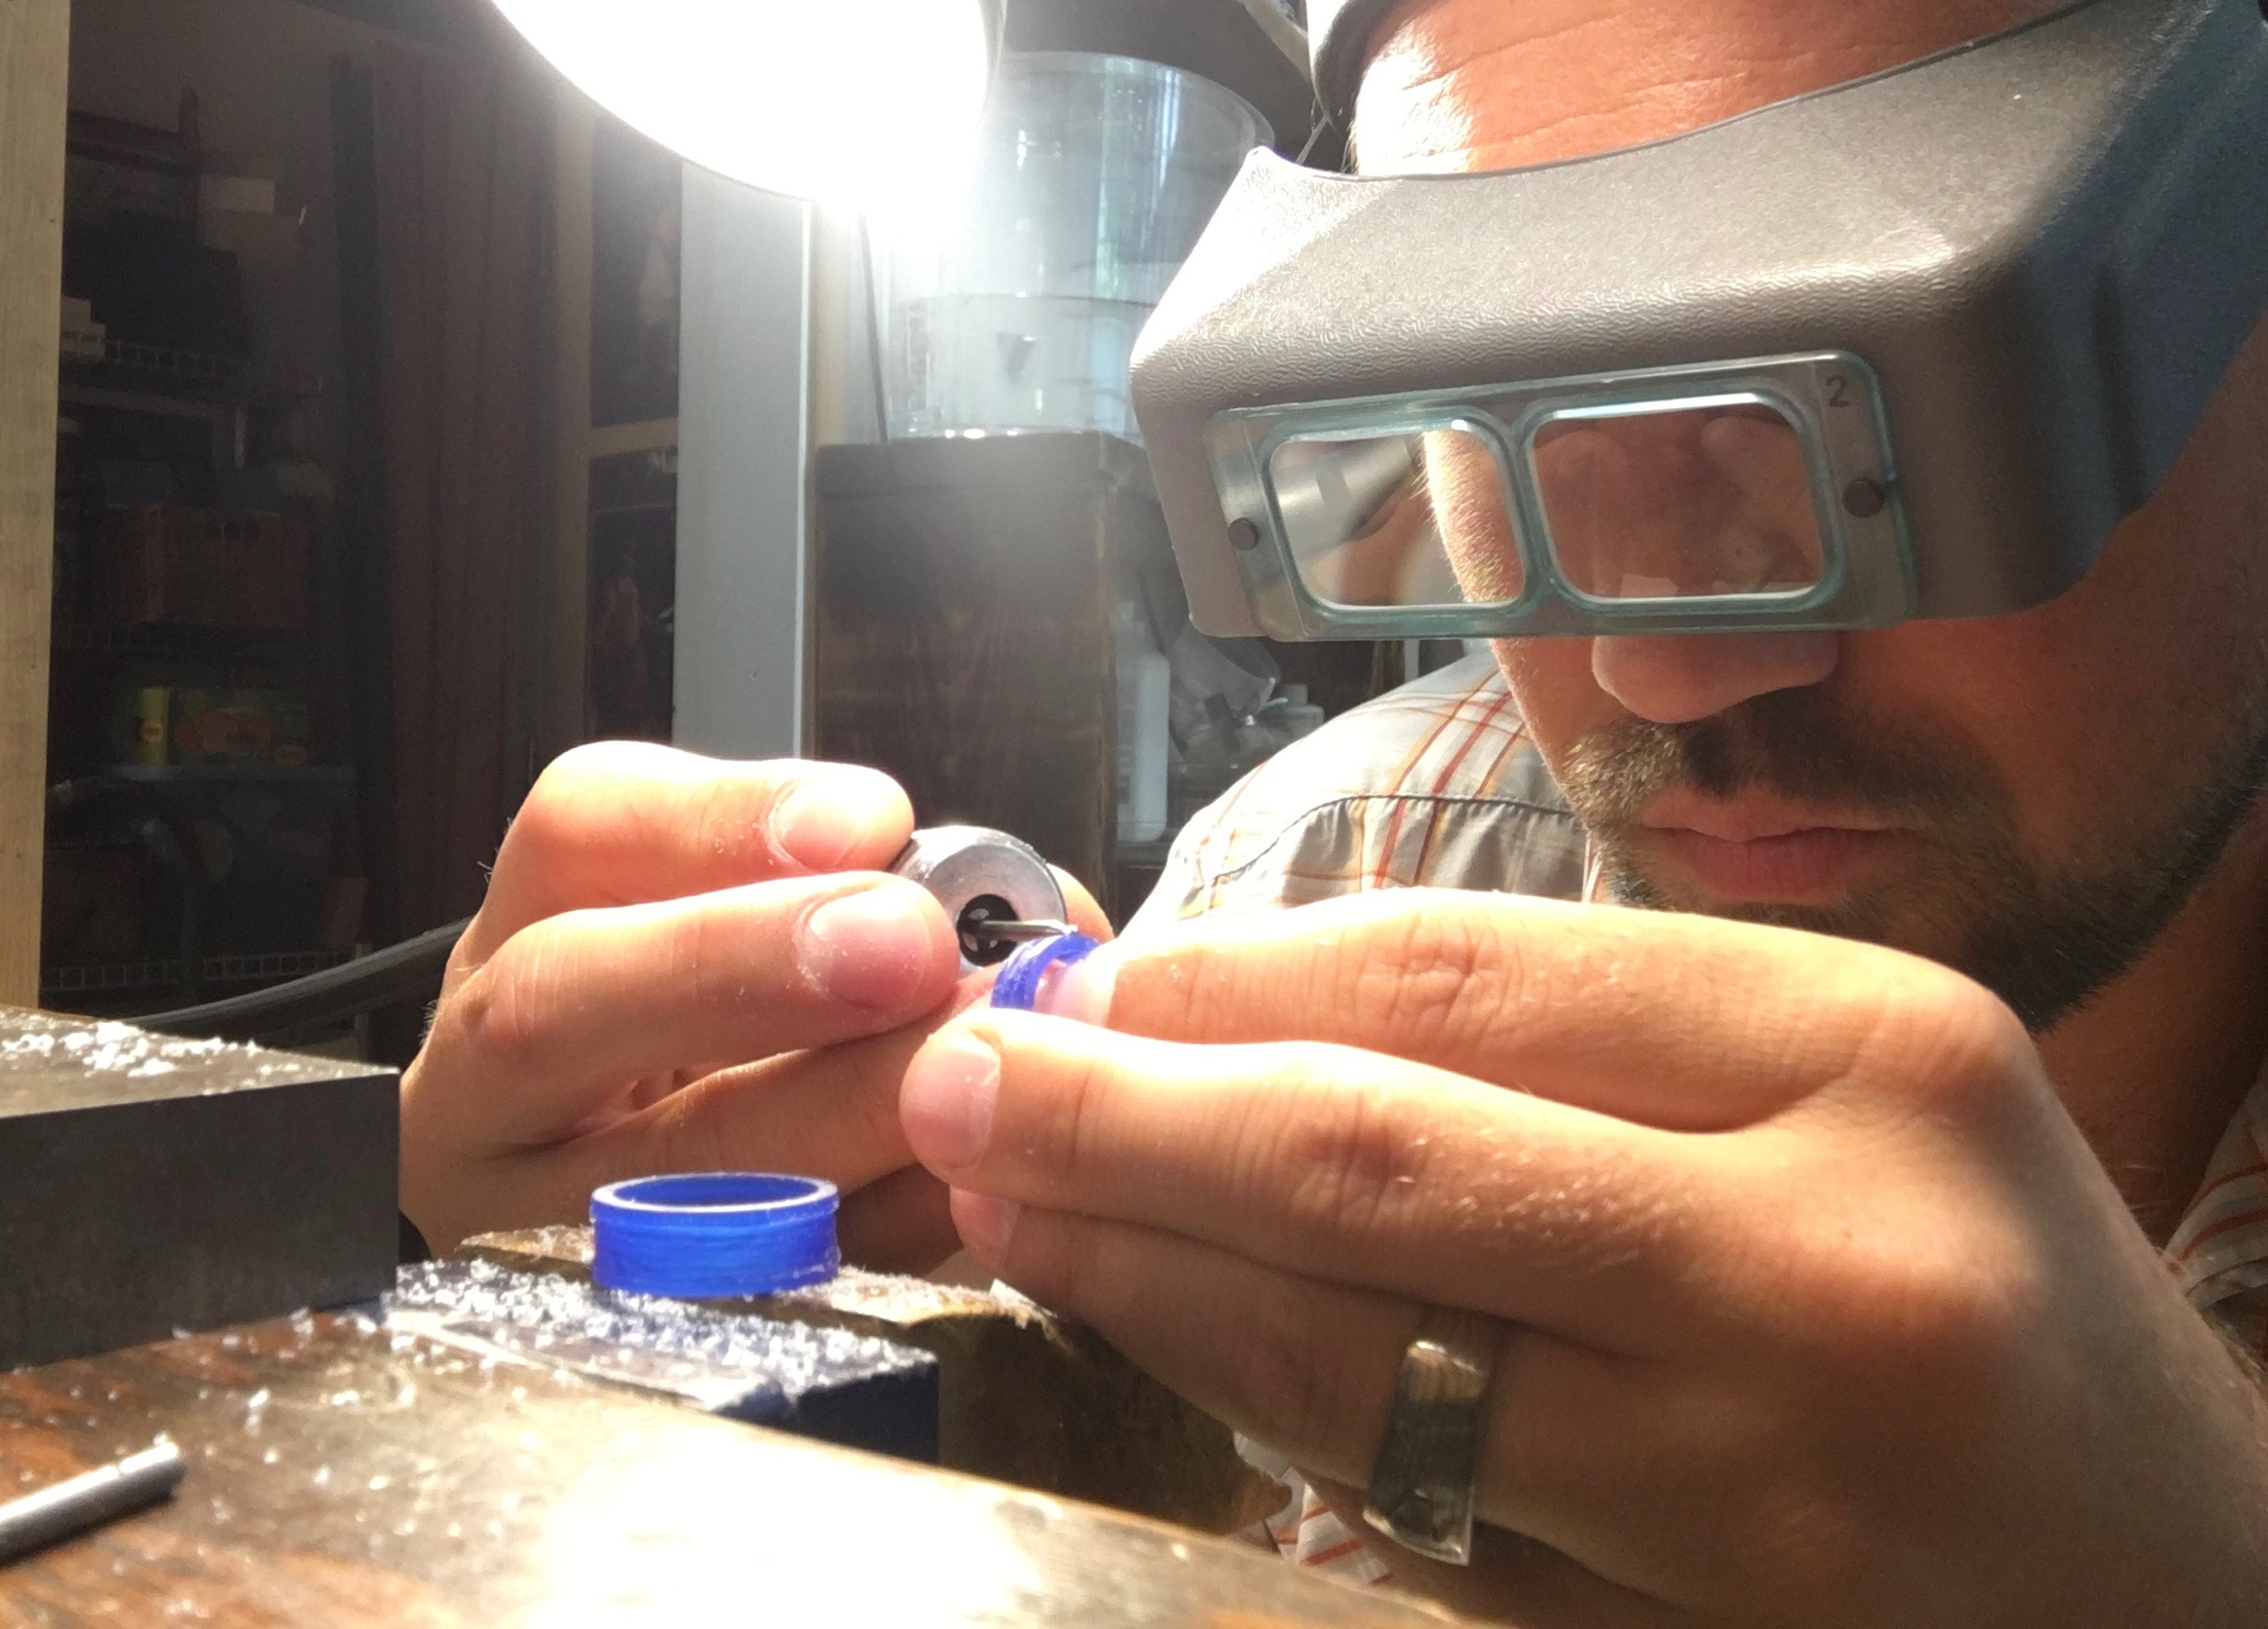 This process is done very carefully with a dremel type tool and old dental tools...